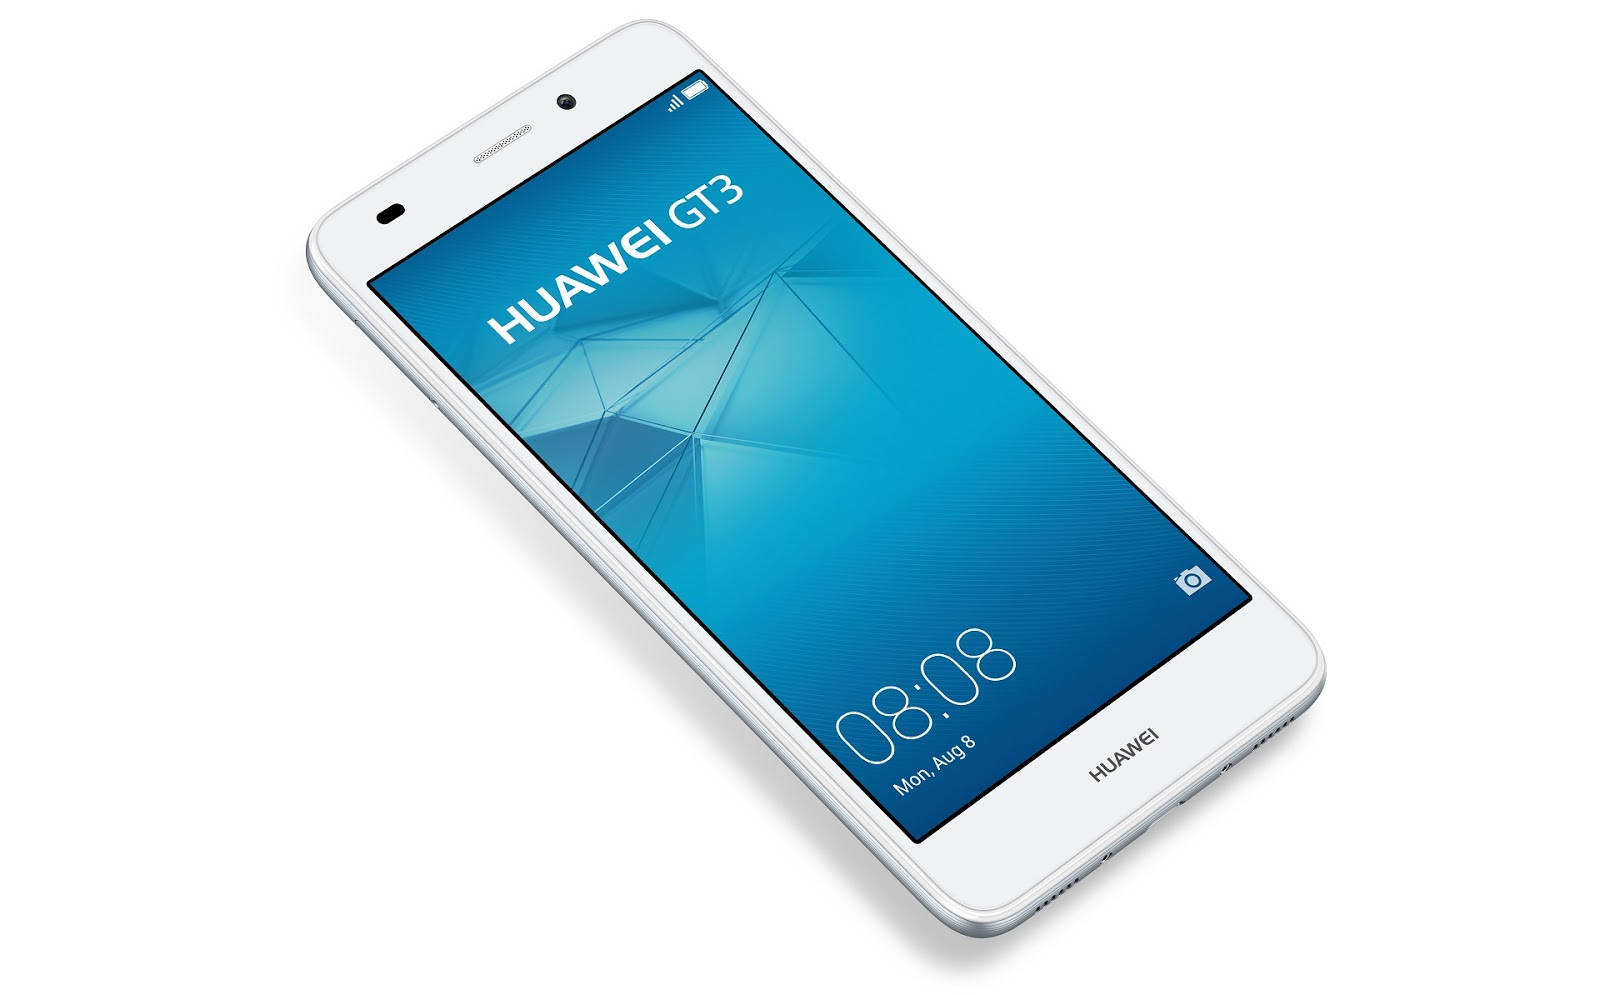 Huawei GT3 come chiudere app